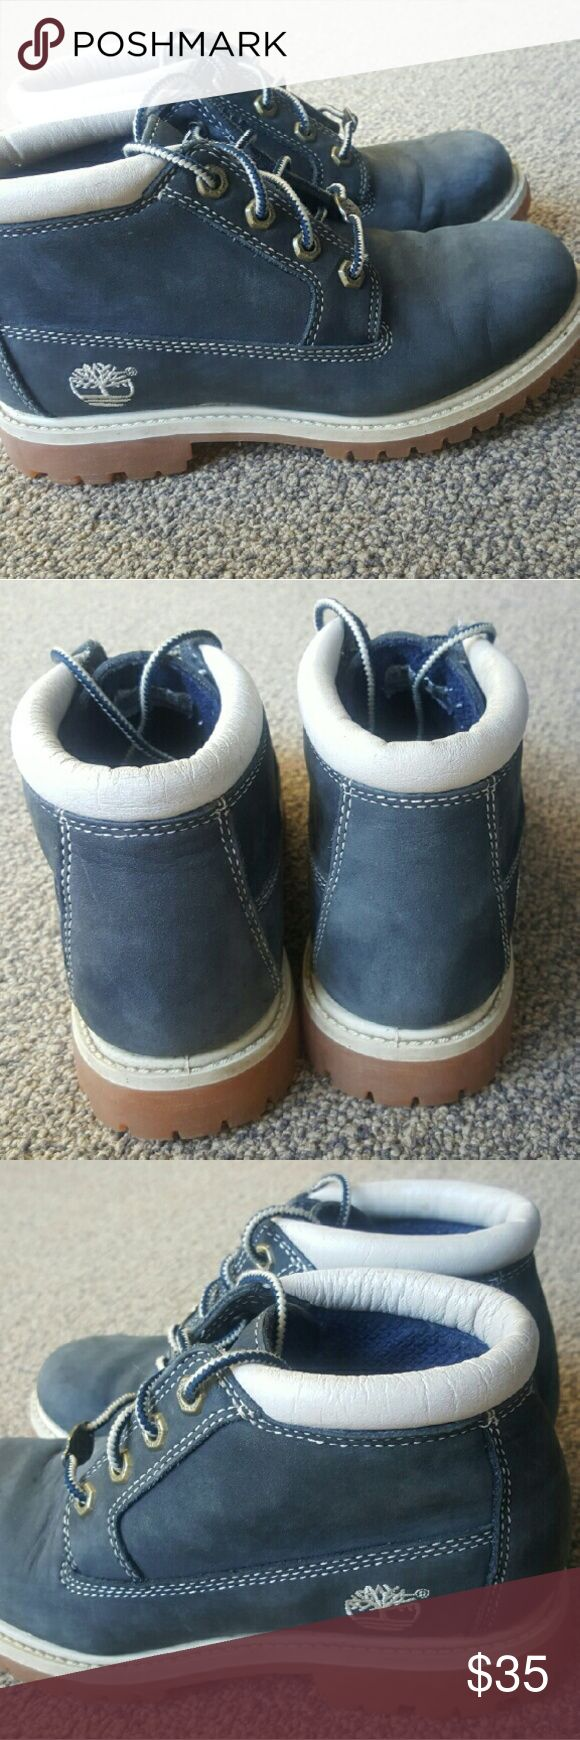 Size 6M Timberland Nellie Chukka Waterproof Boots Only worn once! See tread, never worn on pavement. Gorgeous blue color. Timberland Shoes Ankle Boots & Booties